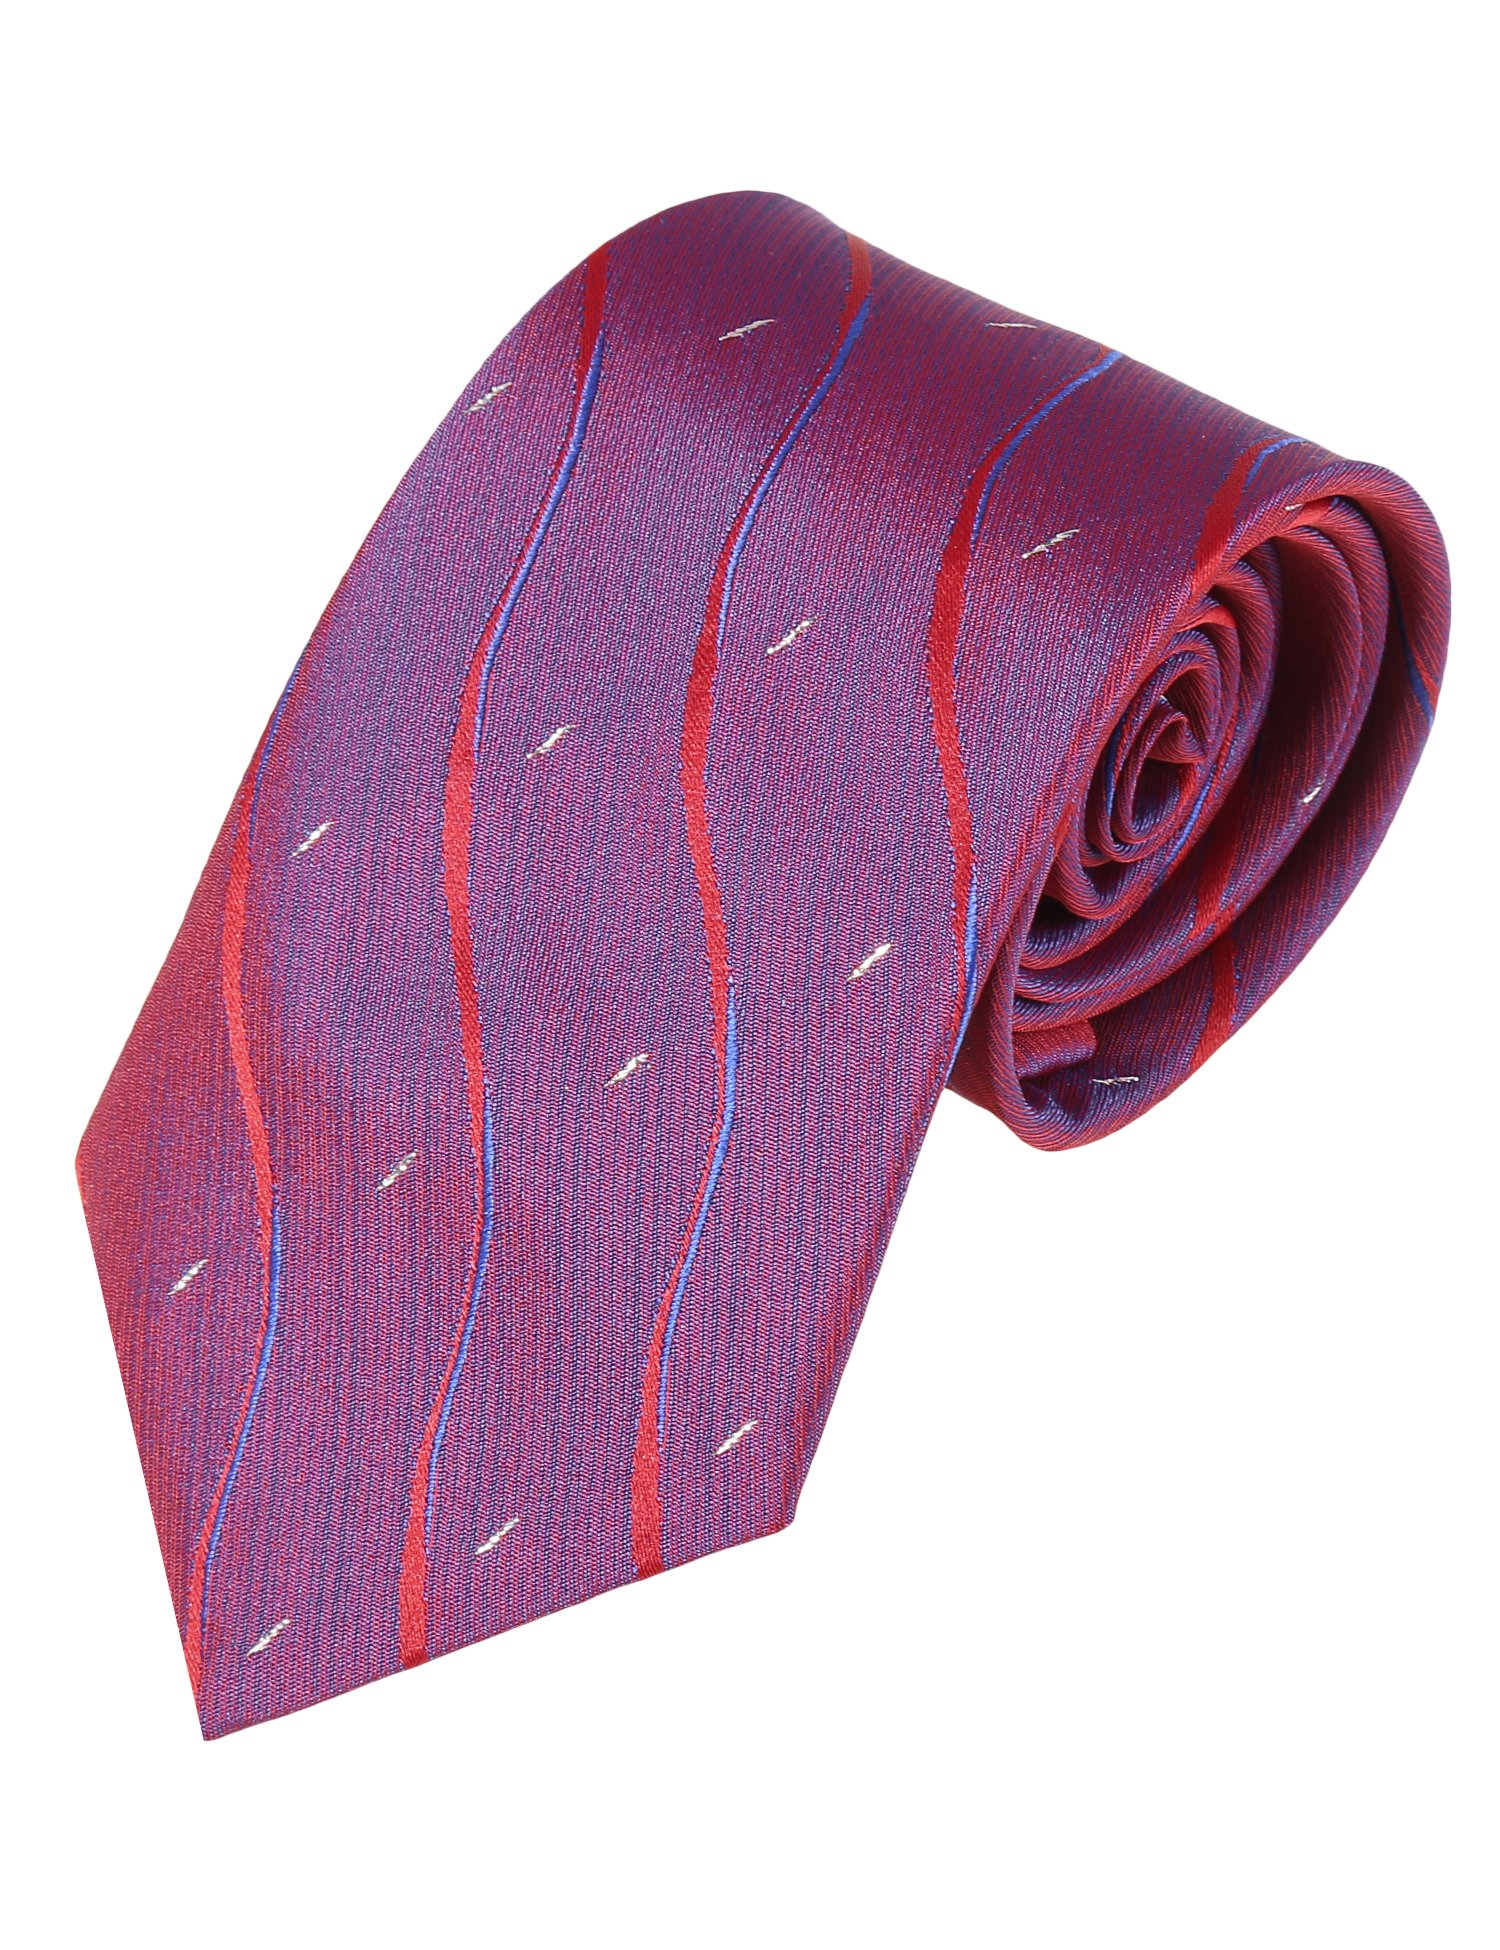 Coofandy Fashion Silk Neck Tie Classic Floral for Men, Wine Red ,One Size